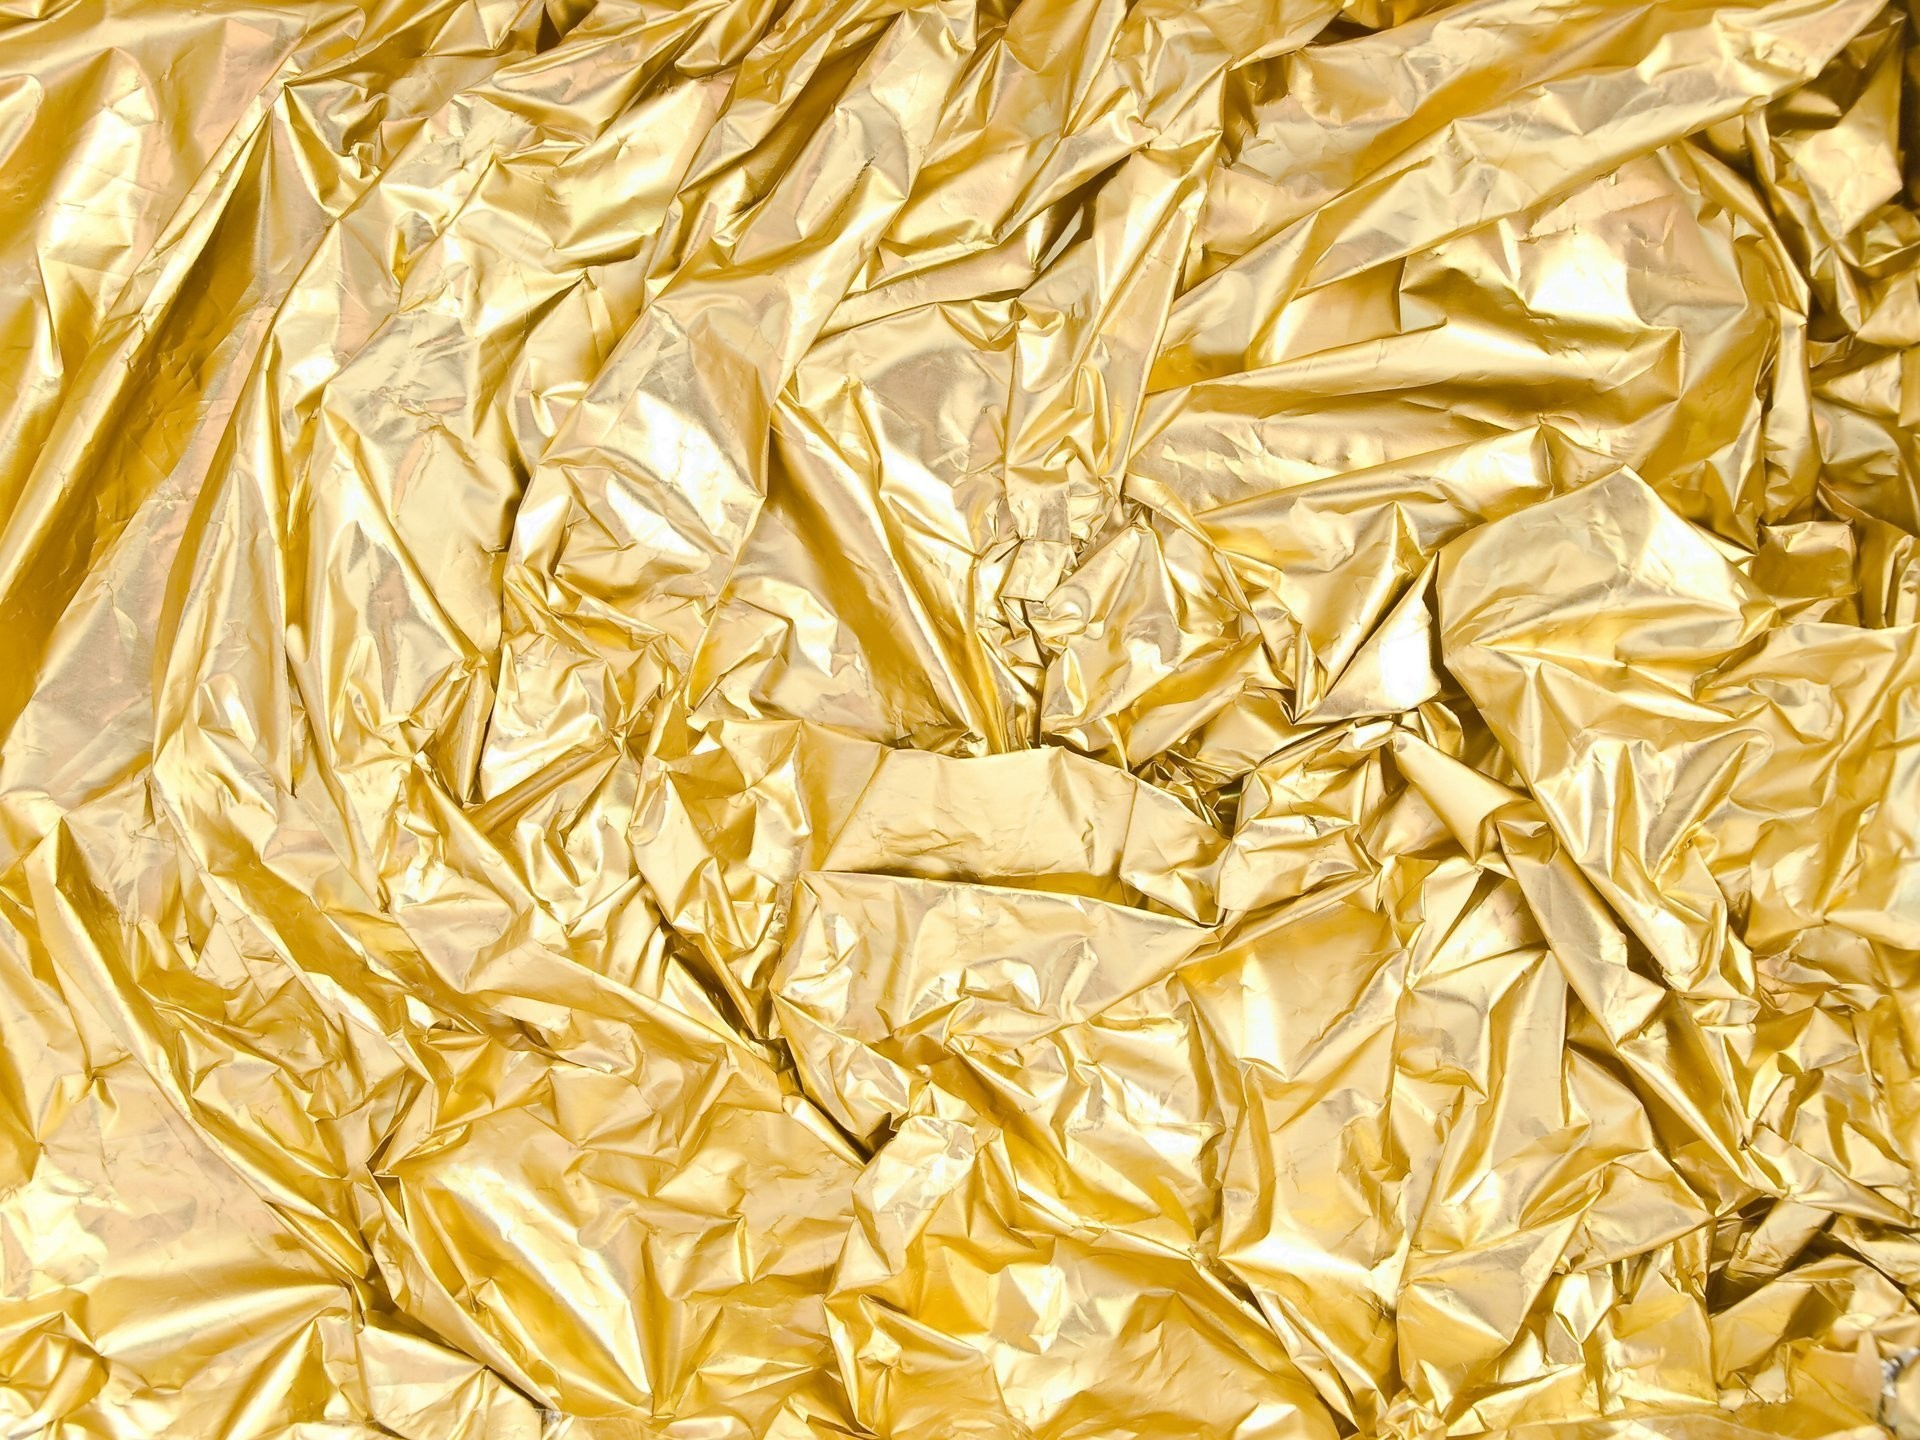 gold metal texture foil tracery shine radiance gold metal textures foil  pattern picture shine lights